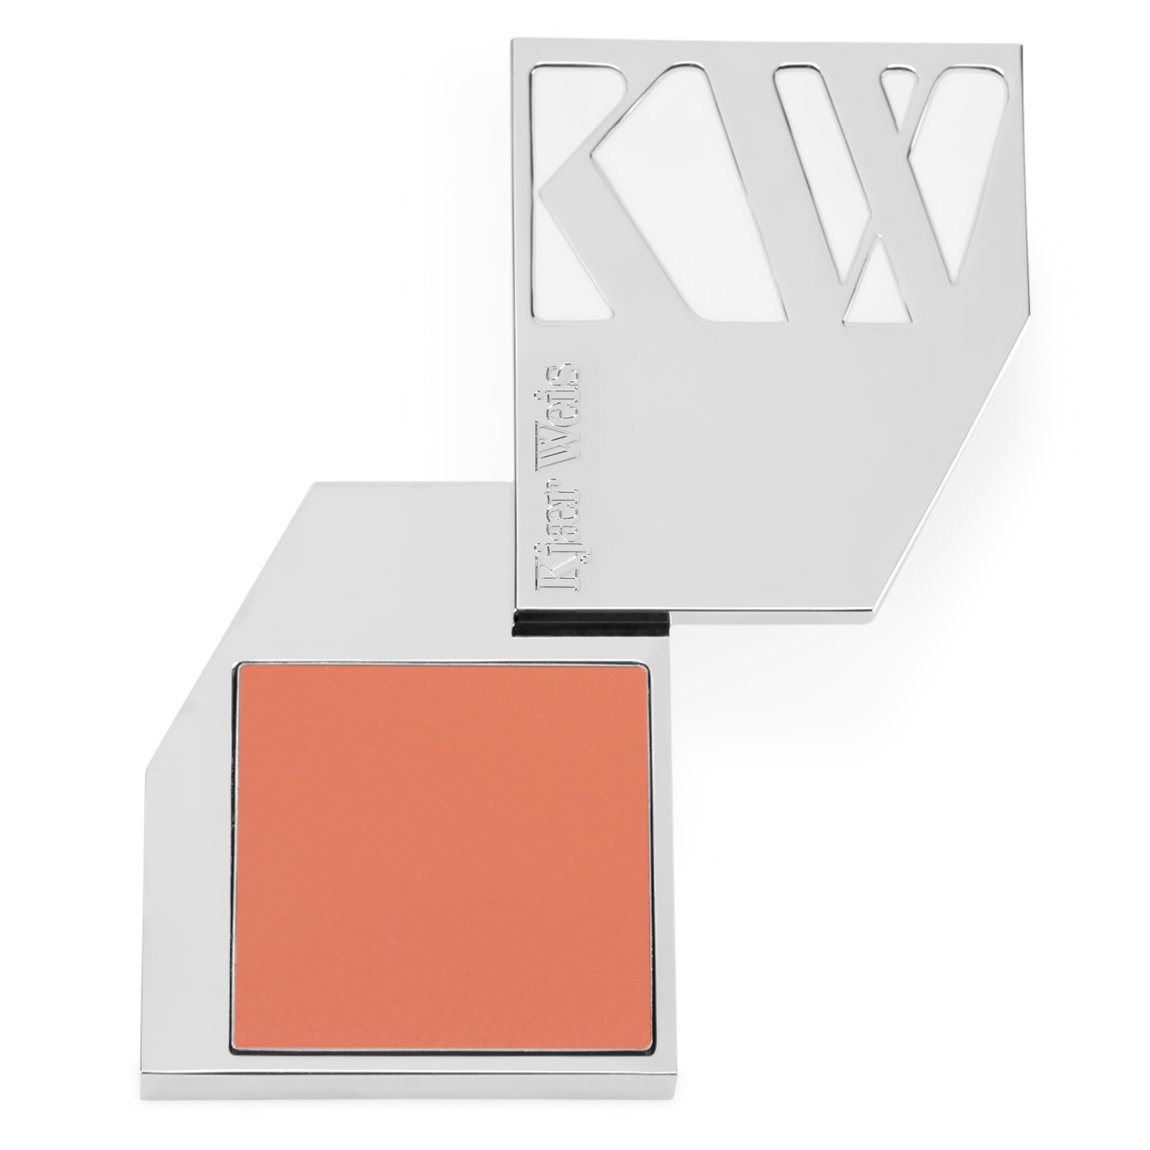 Kjaer Weis - Cream Blush